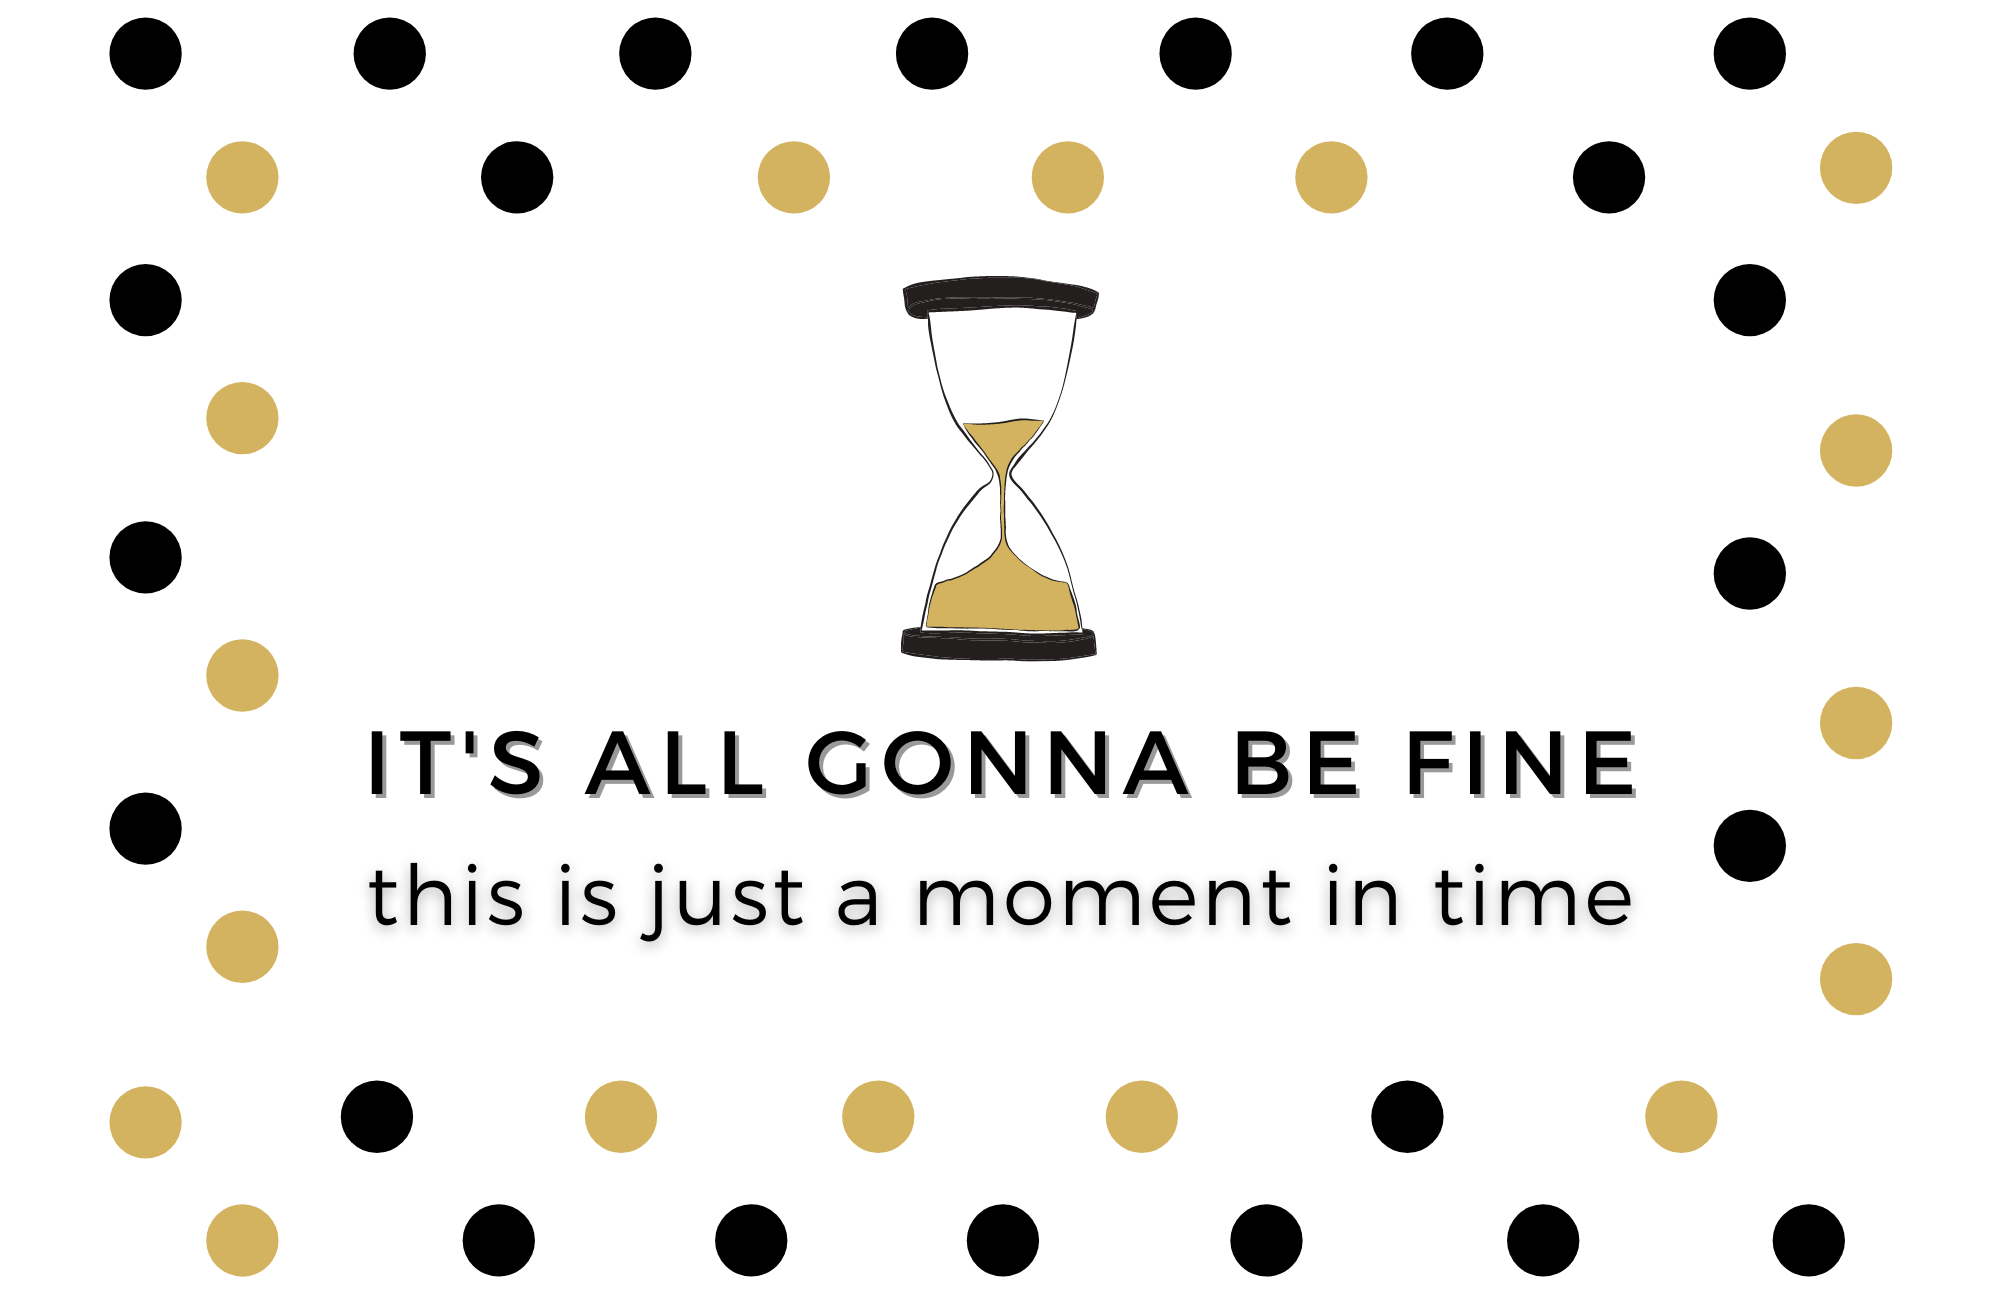 Black and gold polka dots on perimeter of page, black and gold hourglass in center, phrase below says